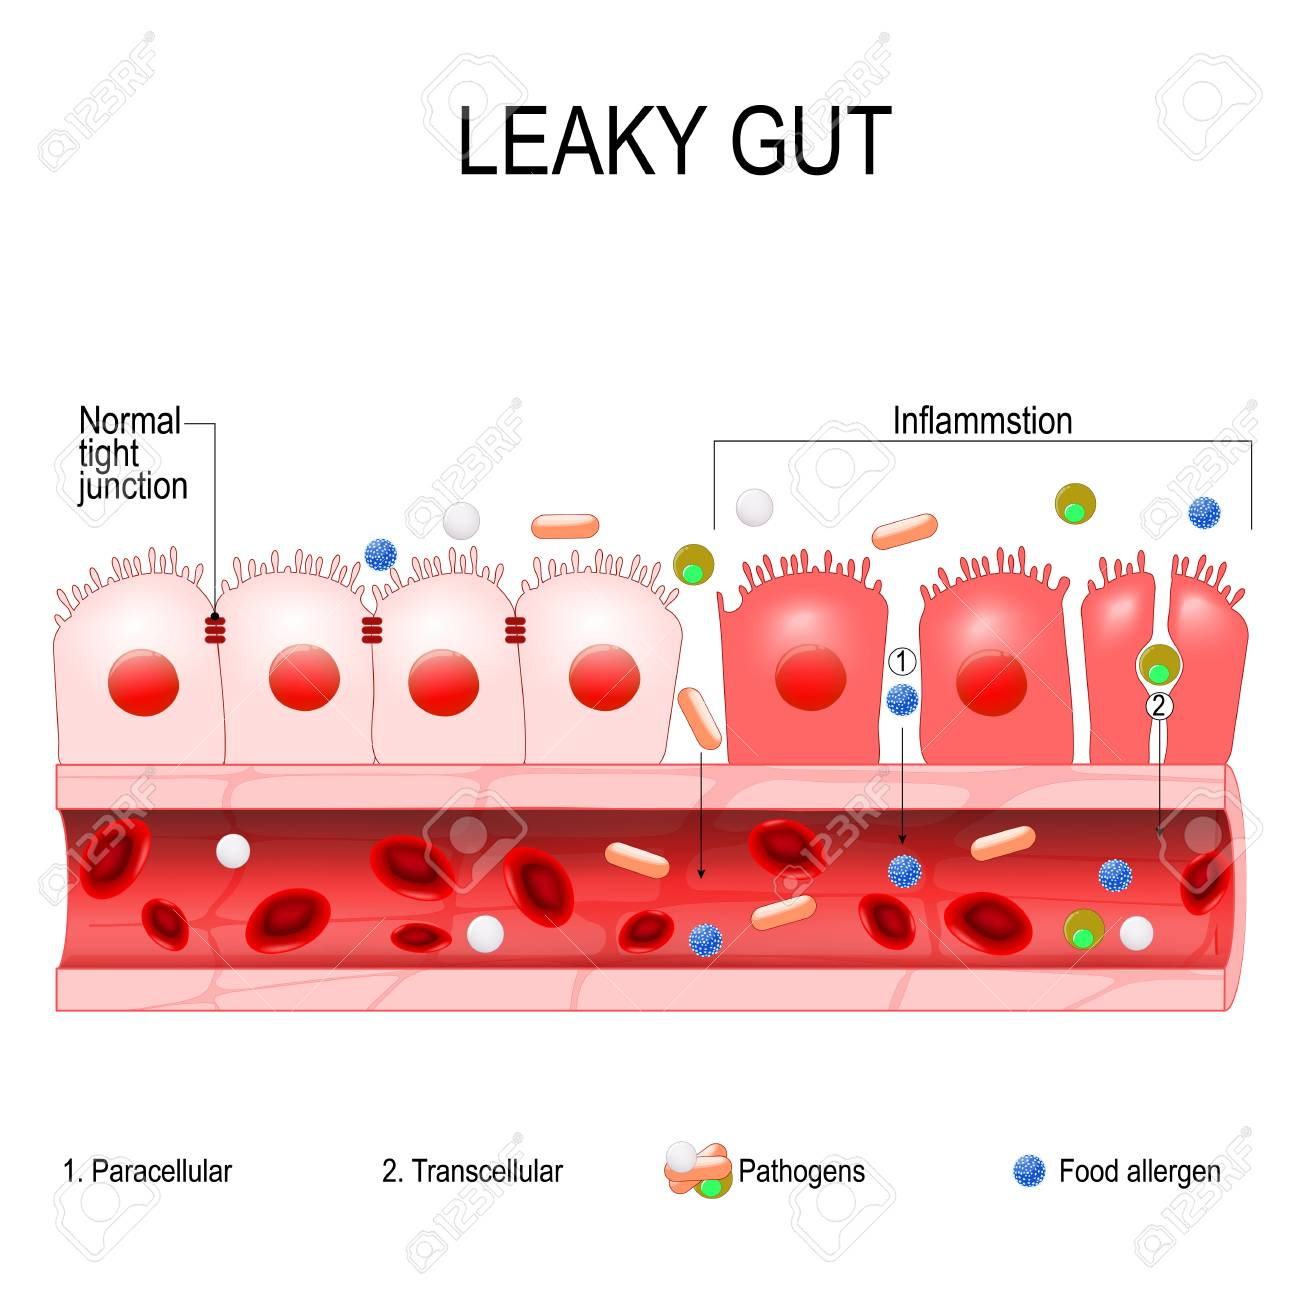 leaky gut cells on gut lining held tightly together in intestine celiac disease in adults leaky gut cells on gut lining held tightly together in intestine with celiac disease and gluten sensitivity these tight junctions come apart autoimmune